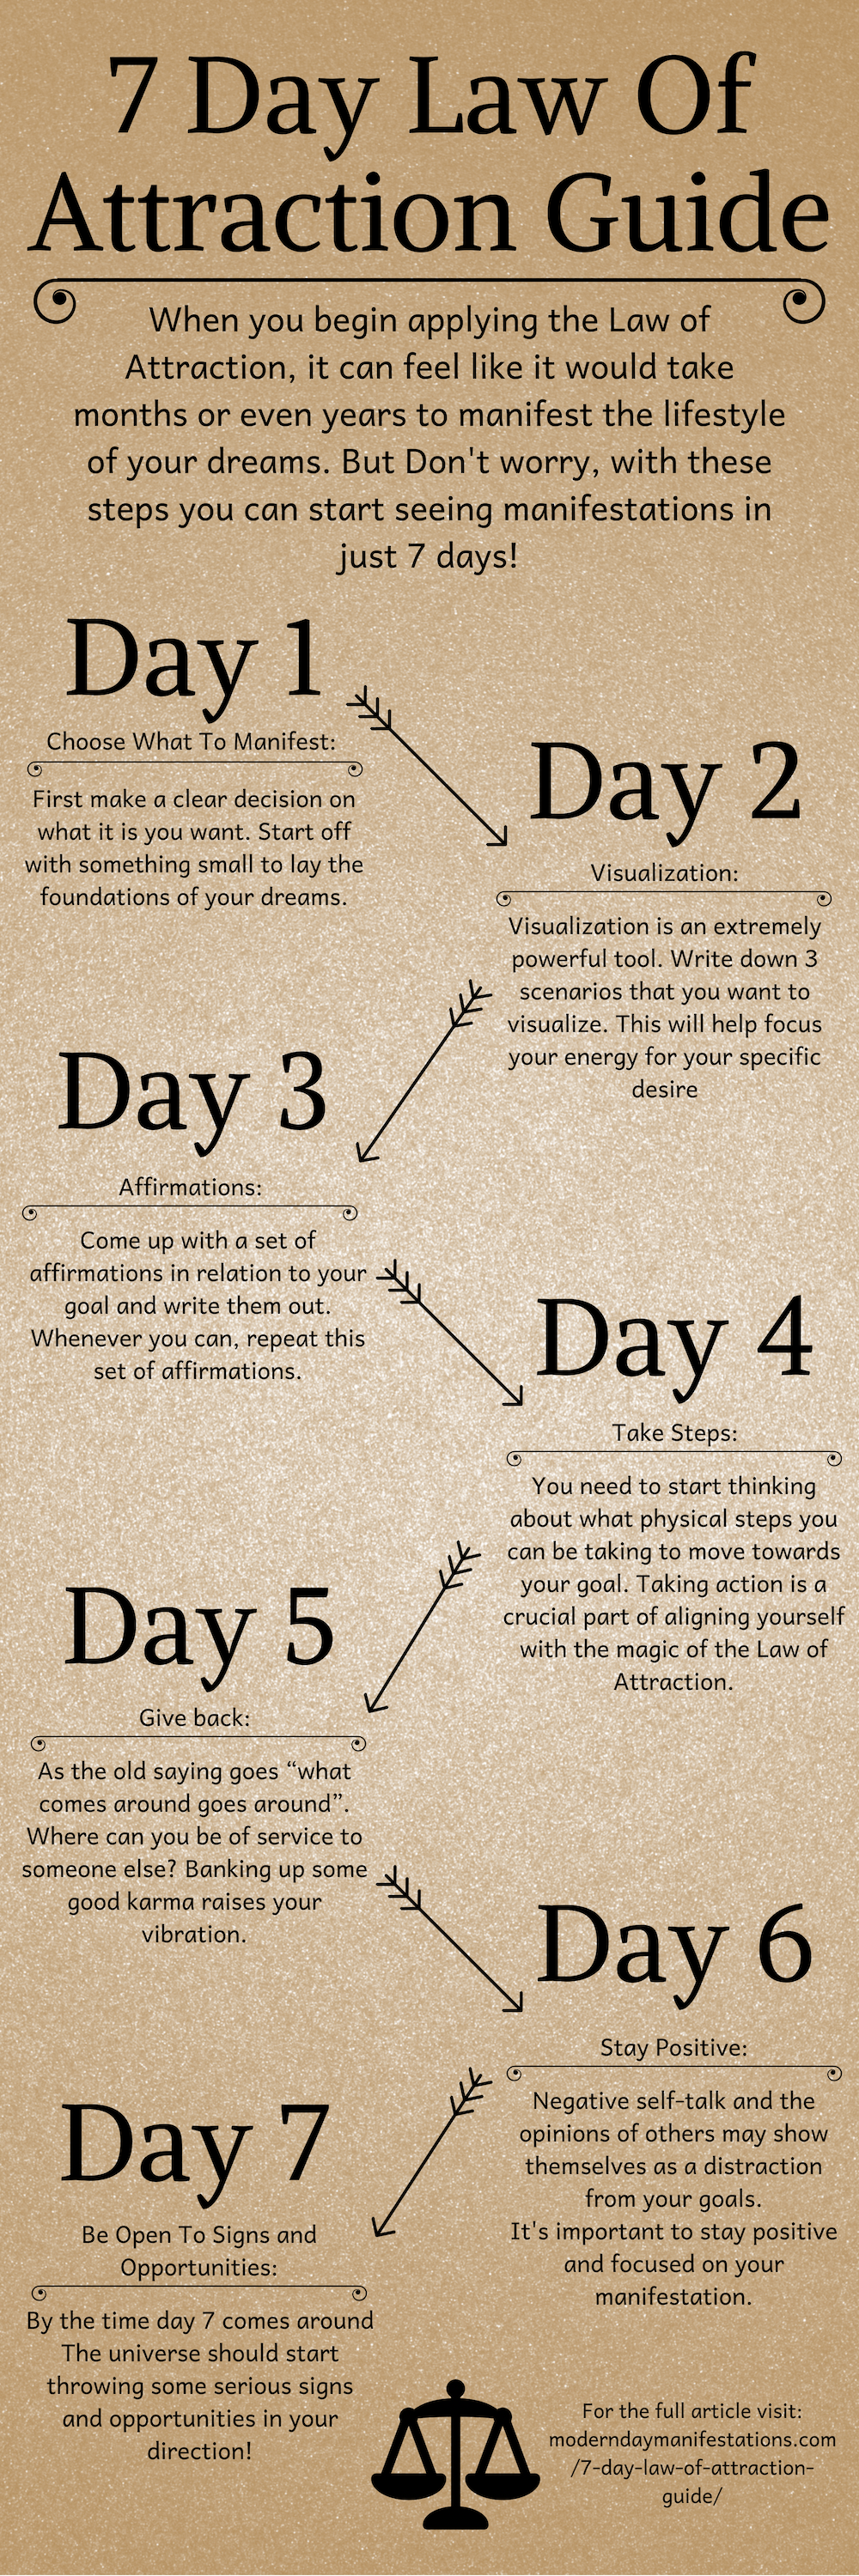 7 Day Law Of Attraction Guide | #SoTheySay | Law of